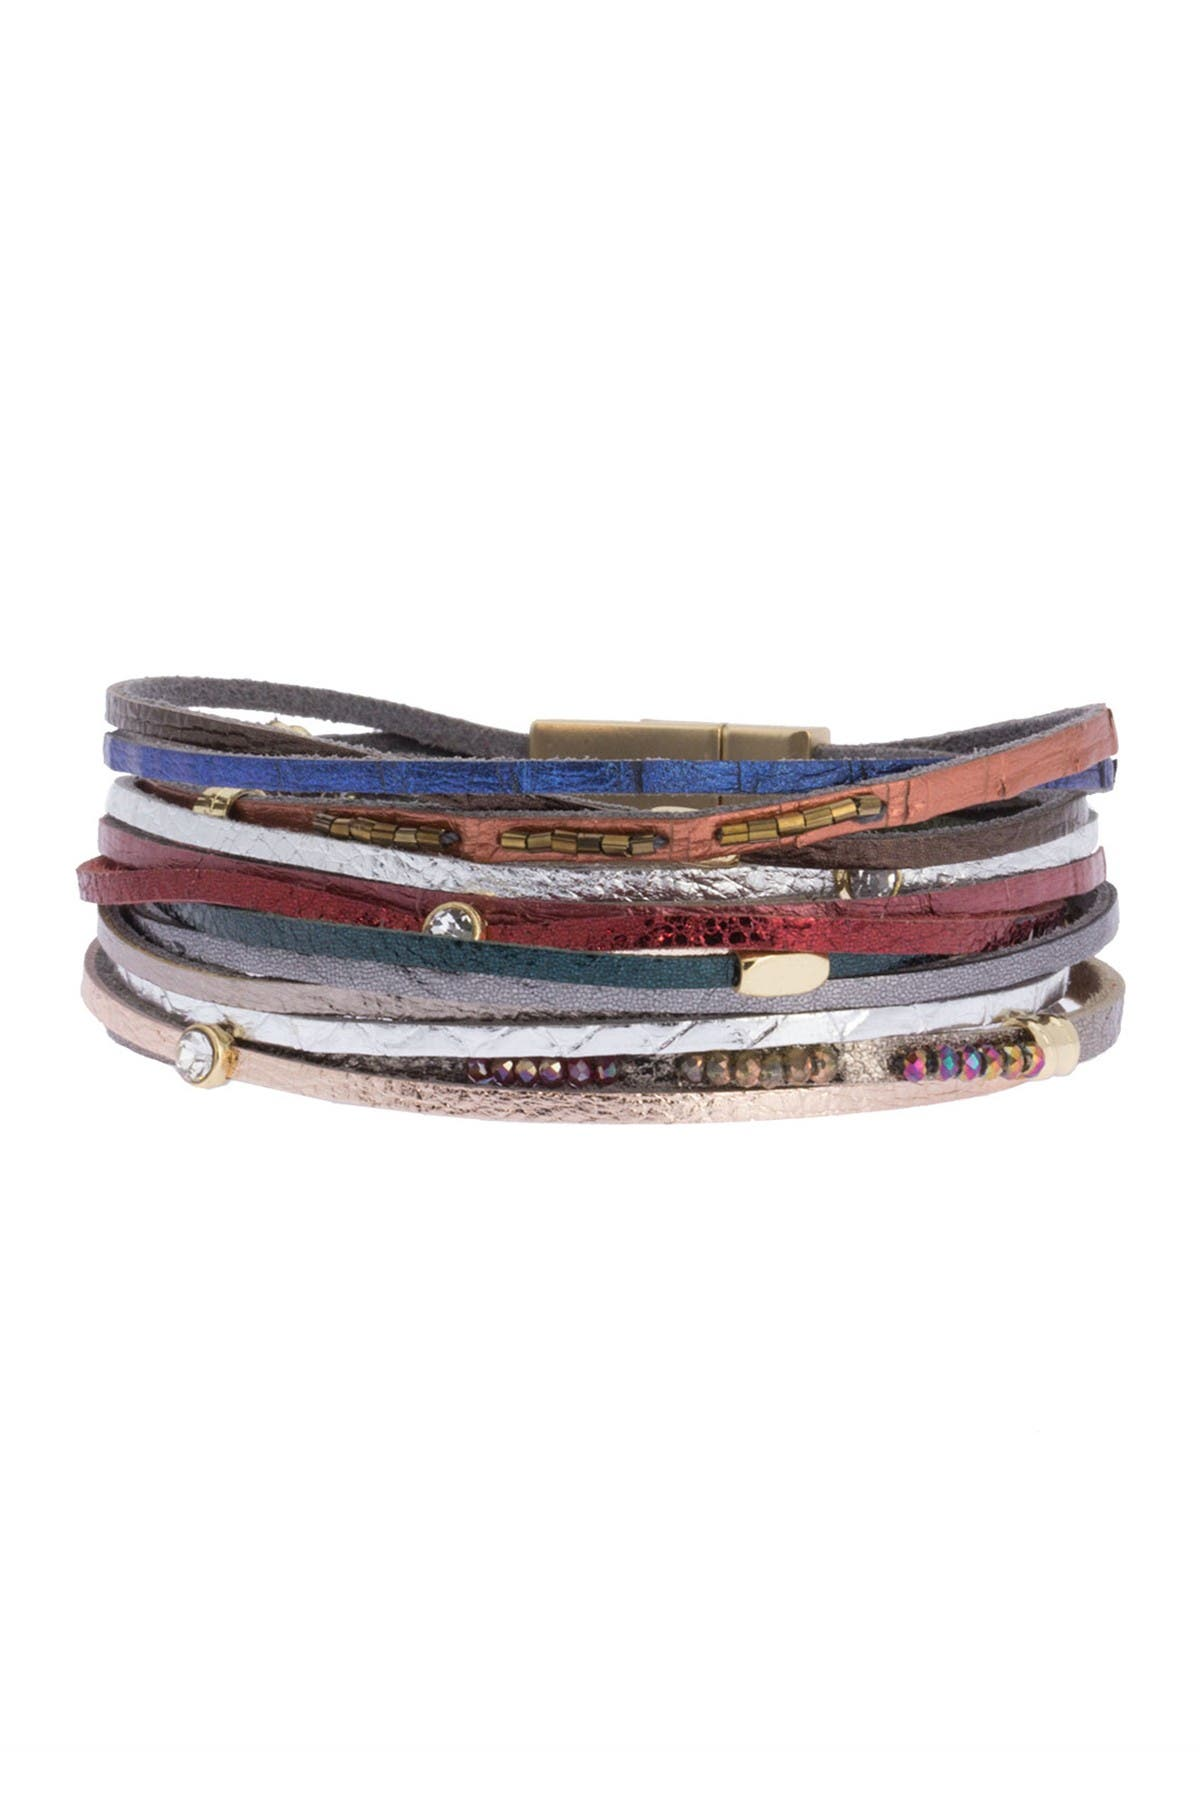 Image of Saachi Easy Breezy Rhinetsone Accented Leather Multi Strand Bracelet